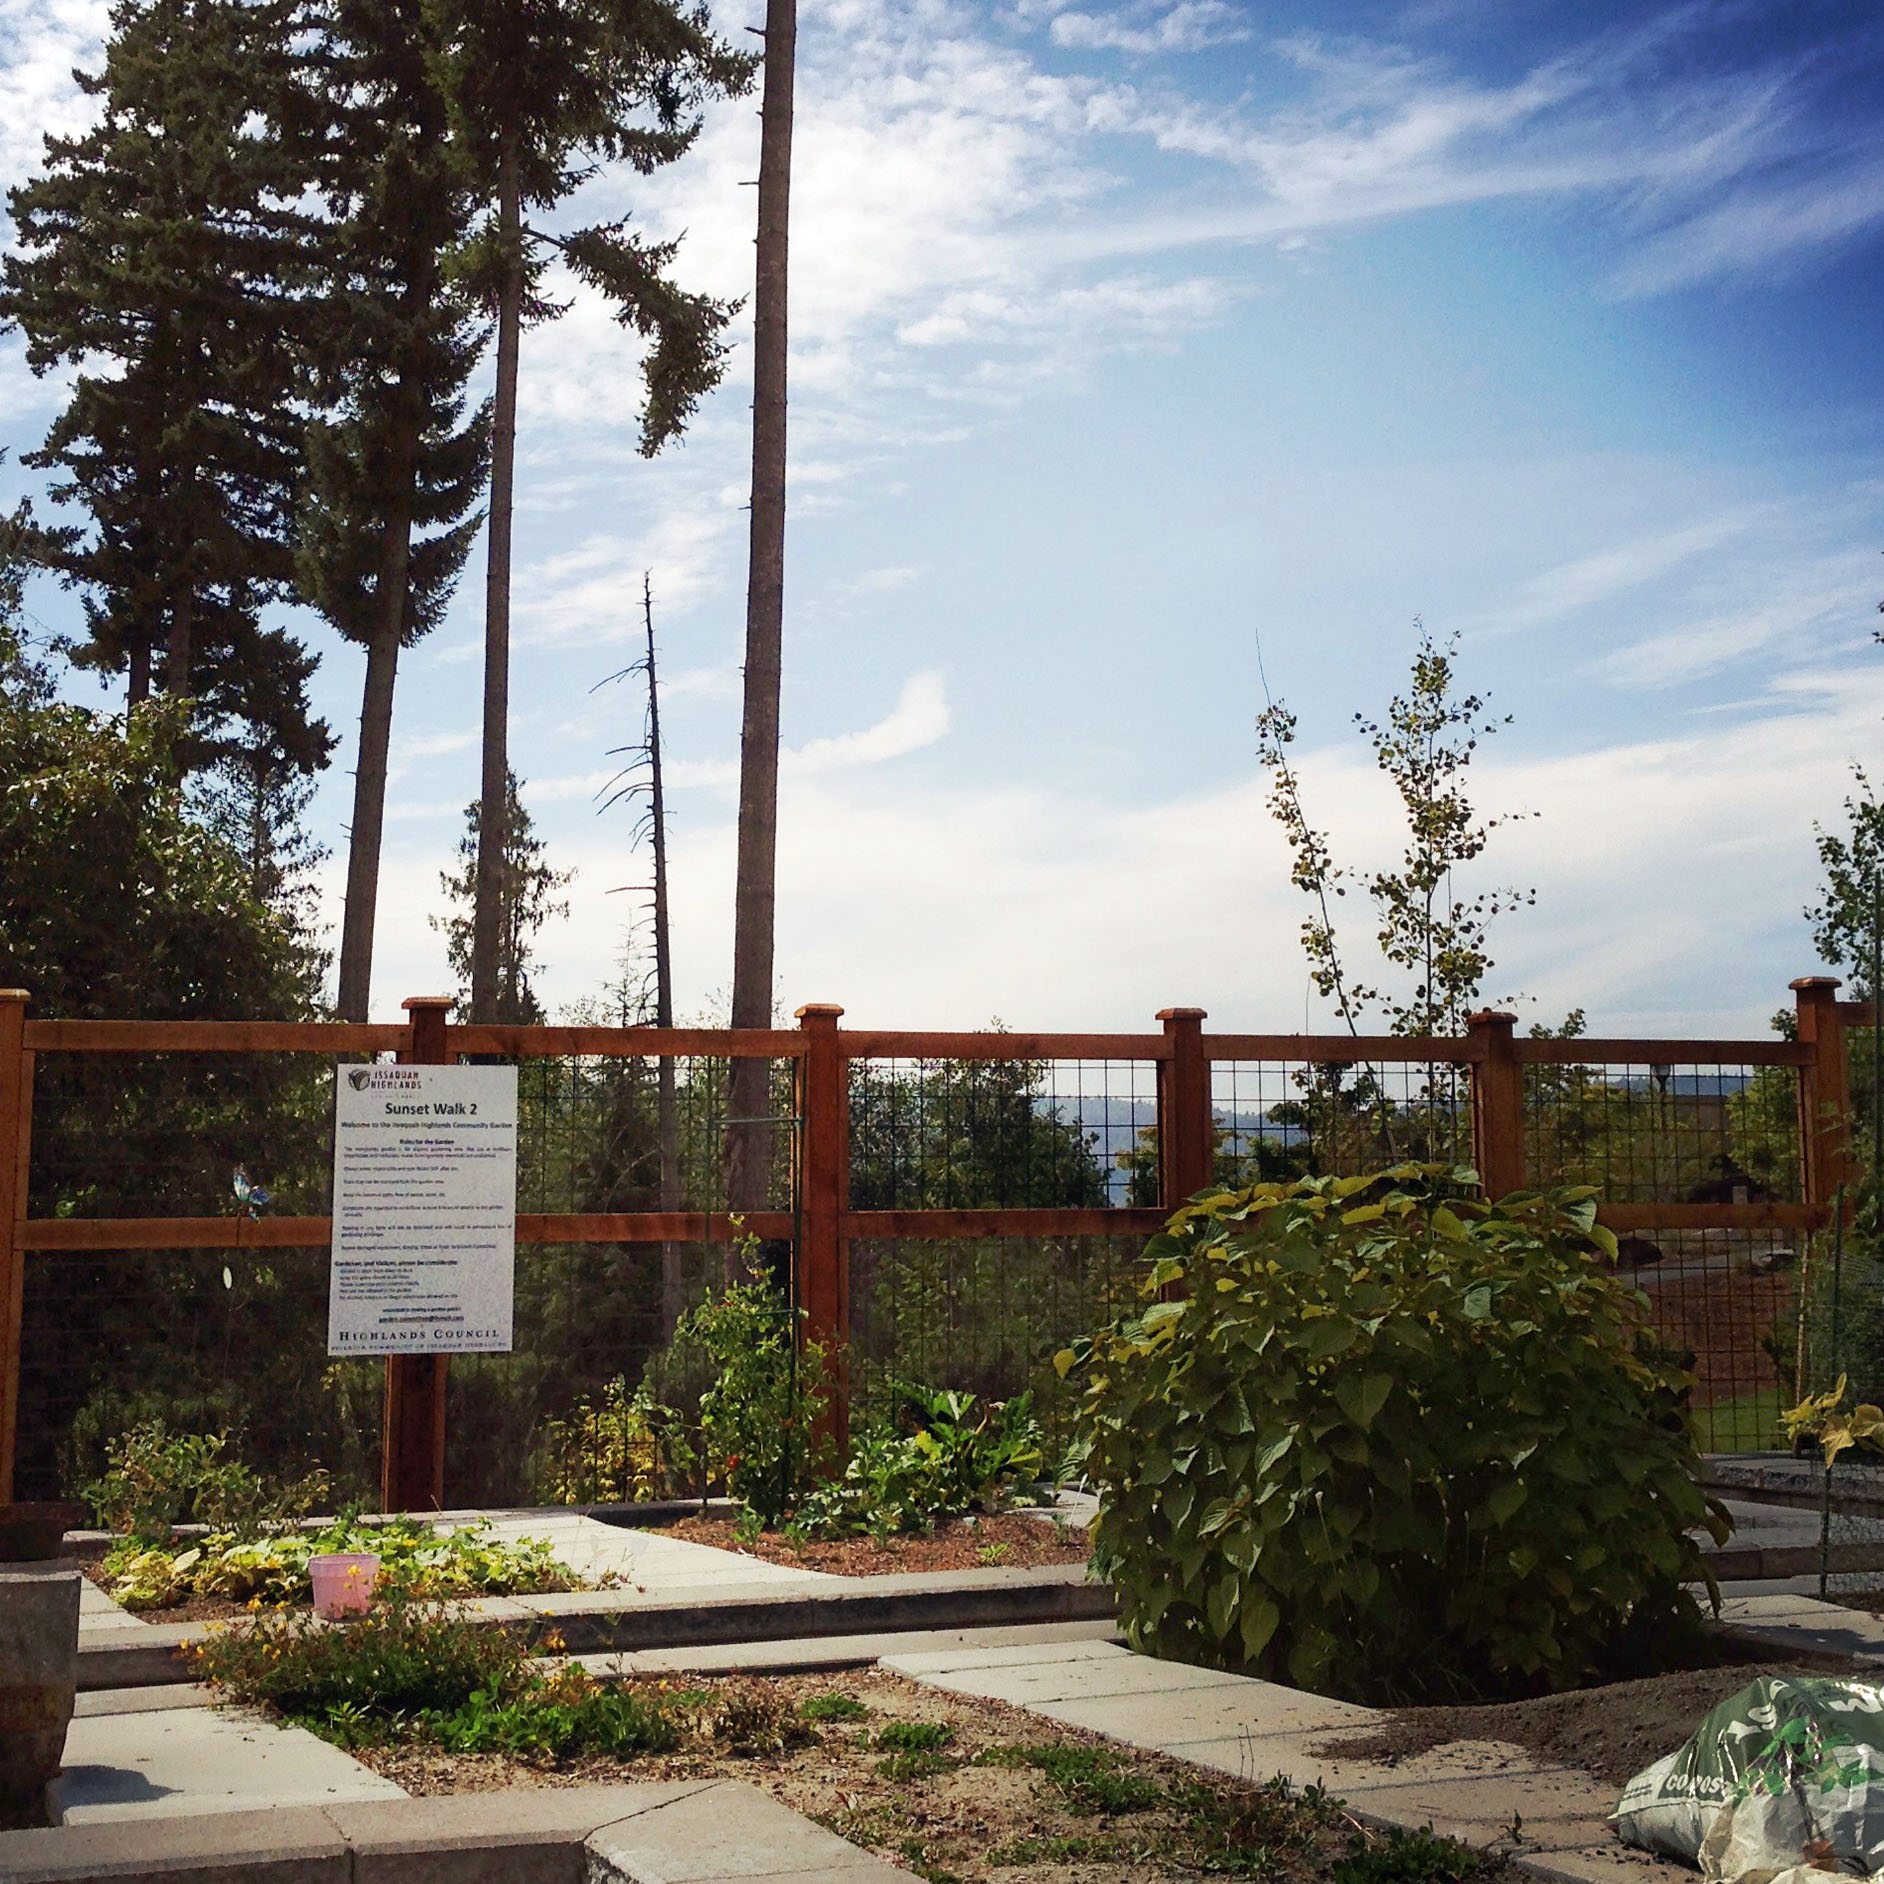 The Sunset Walk Community Garden, where my P-Patch is located, has breathtaking views of Tiger Mountain in the distance.